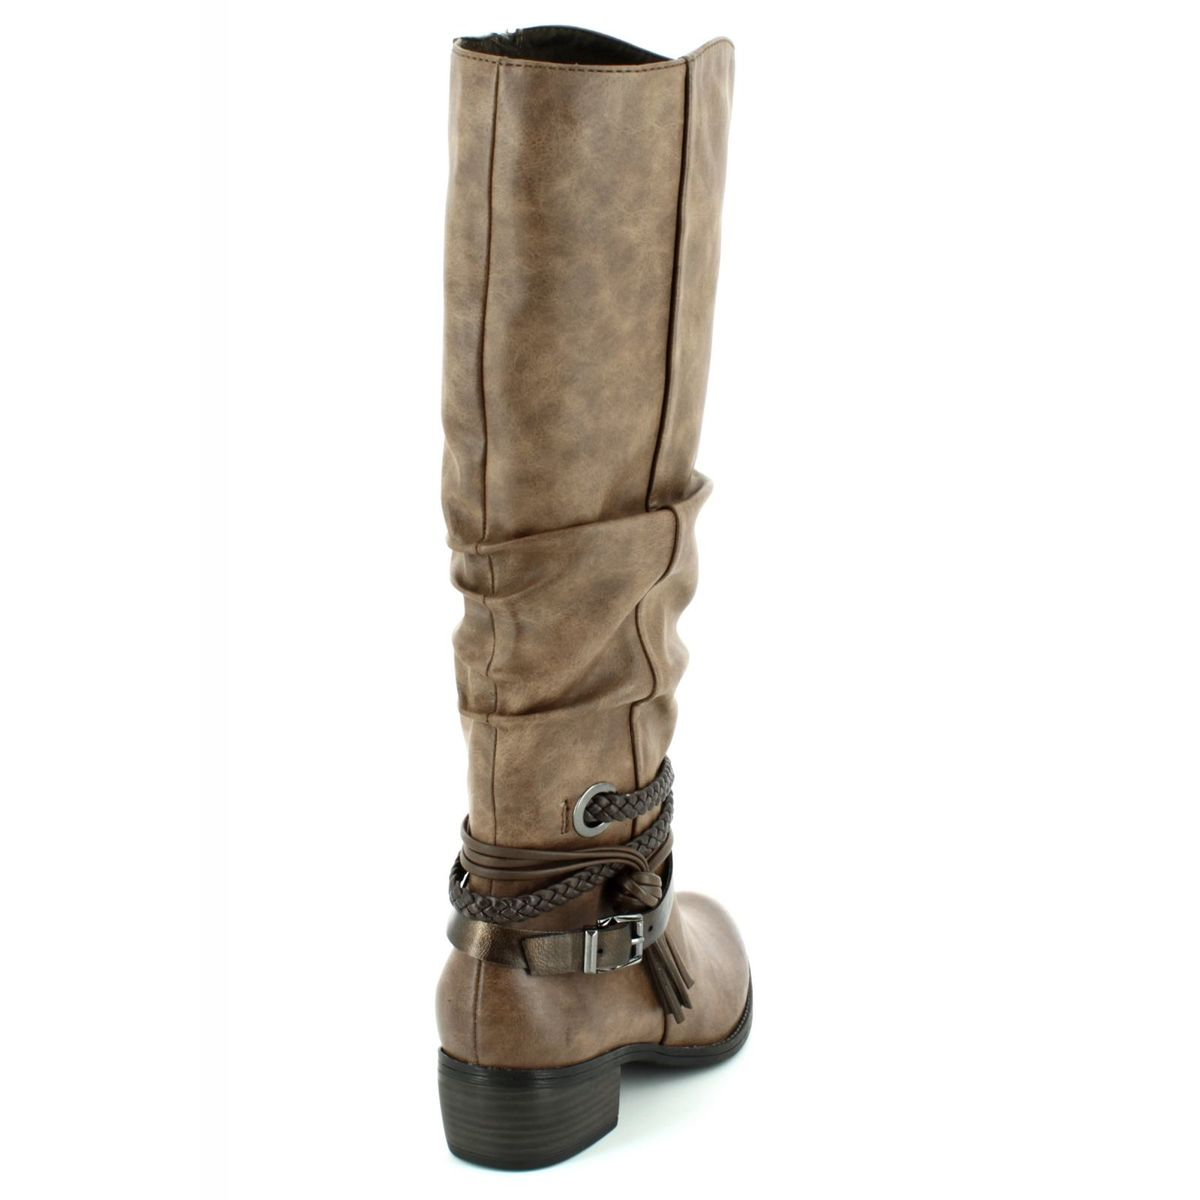 0a610f8715c Marco Tozzi Knee-high Boots - Tan multi - 25507 372 DREMA 72